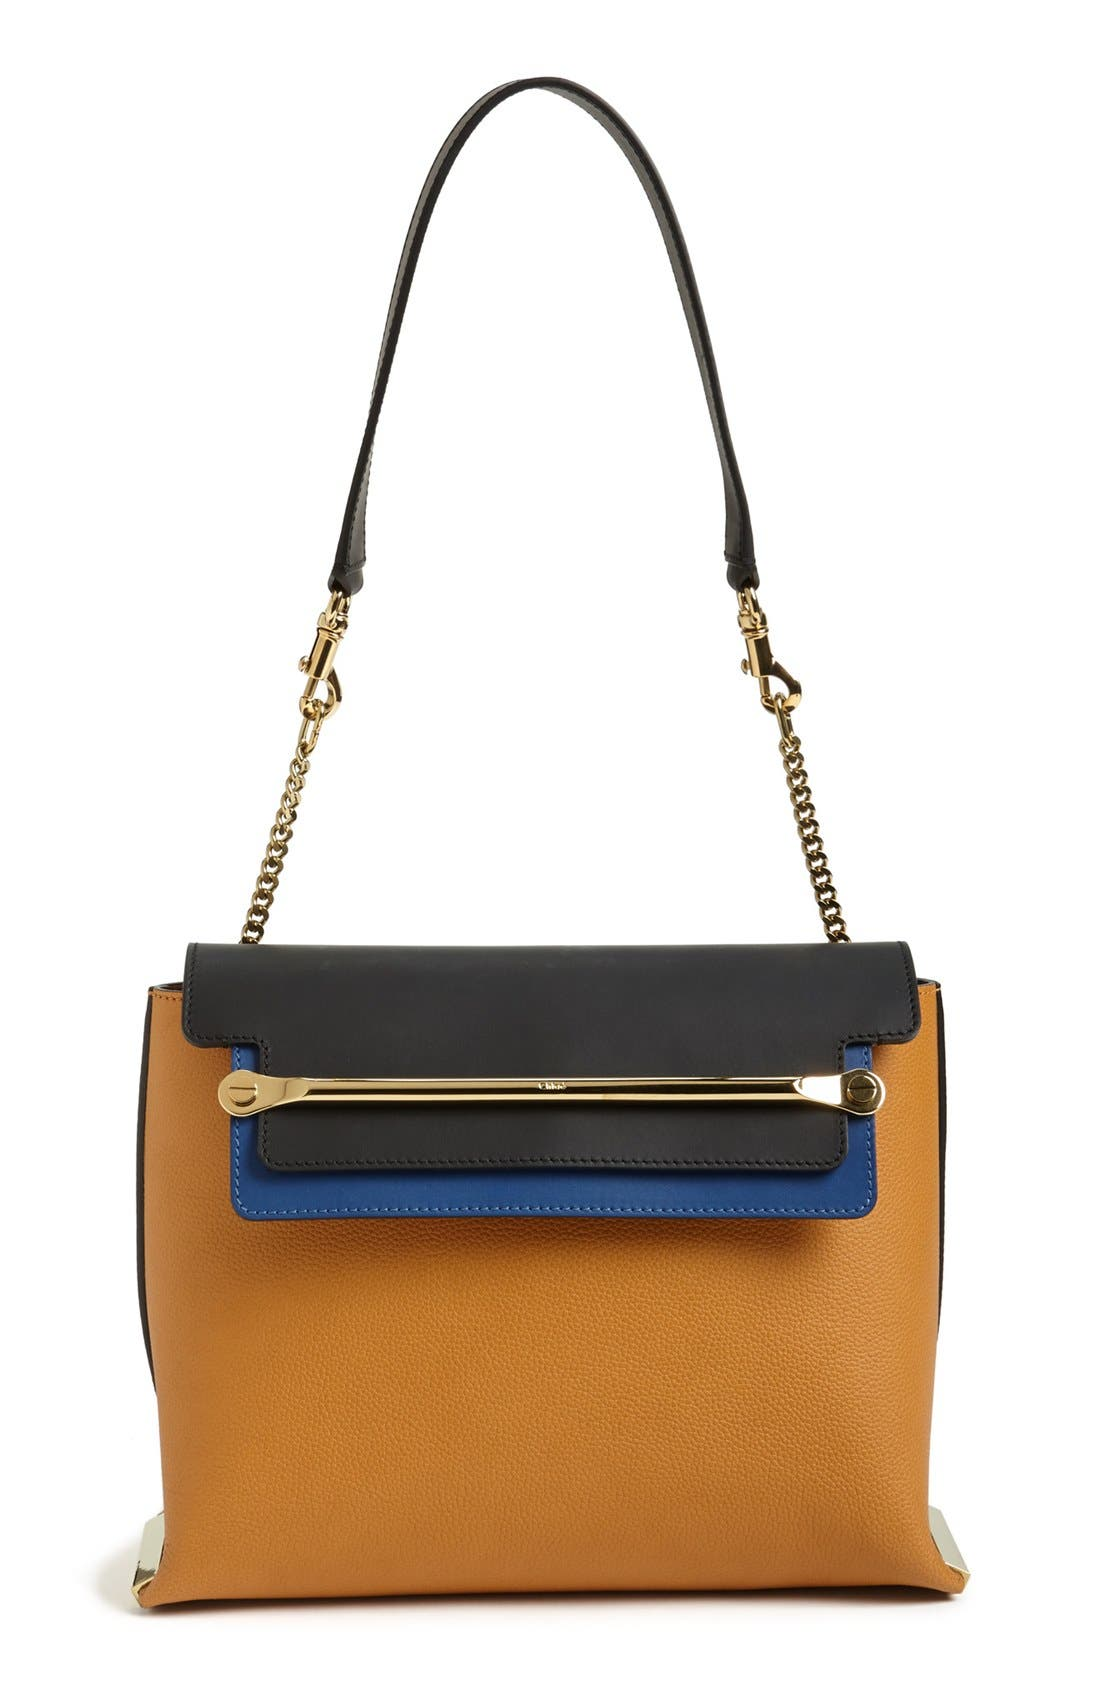 Alternate Image 1 Selected - Chloé 'Clare' Tricolor Leather Shoulder Bag